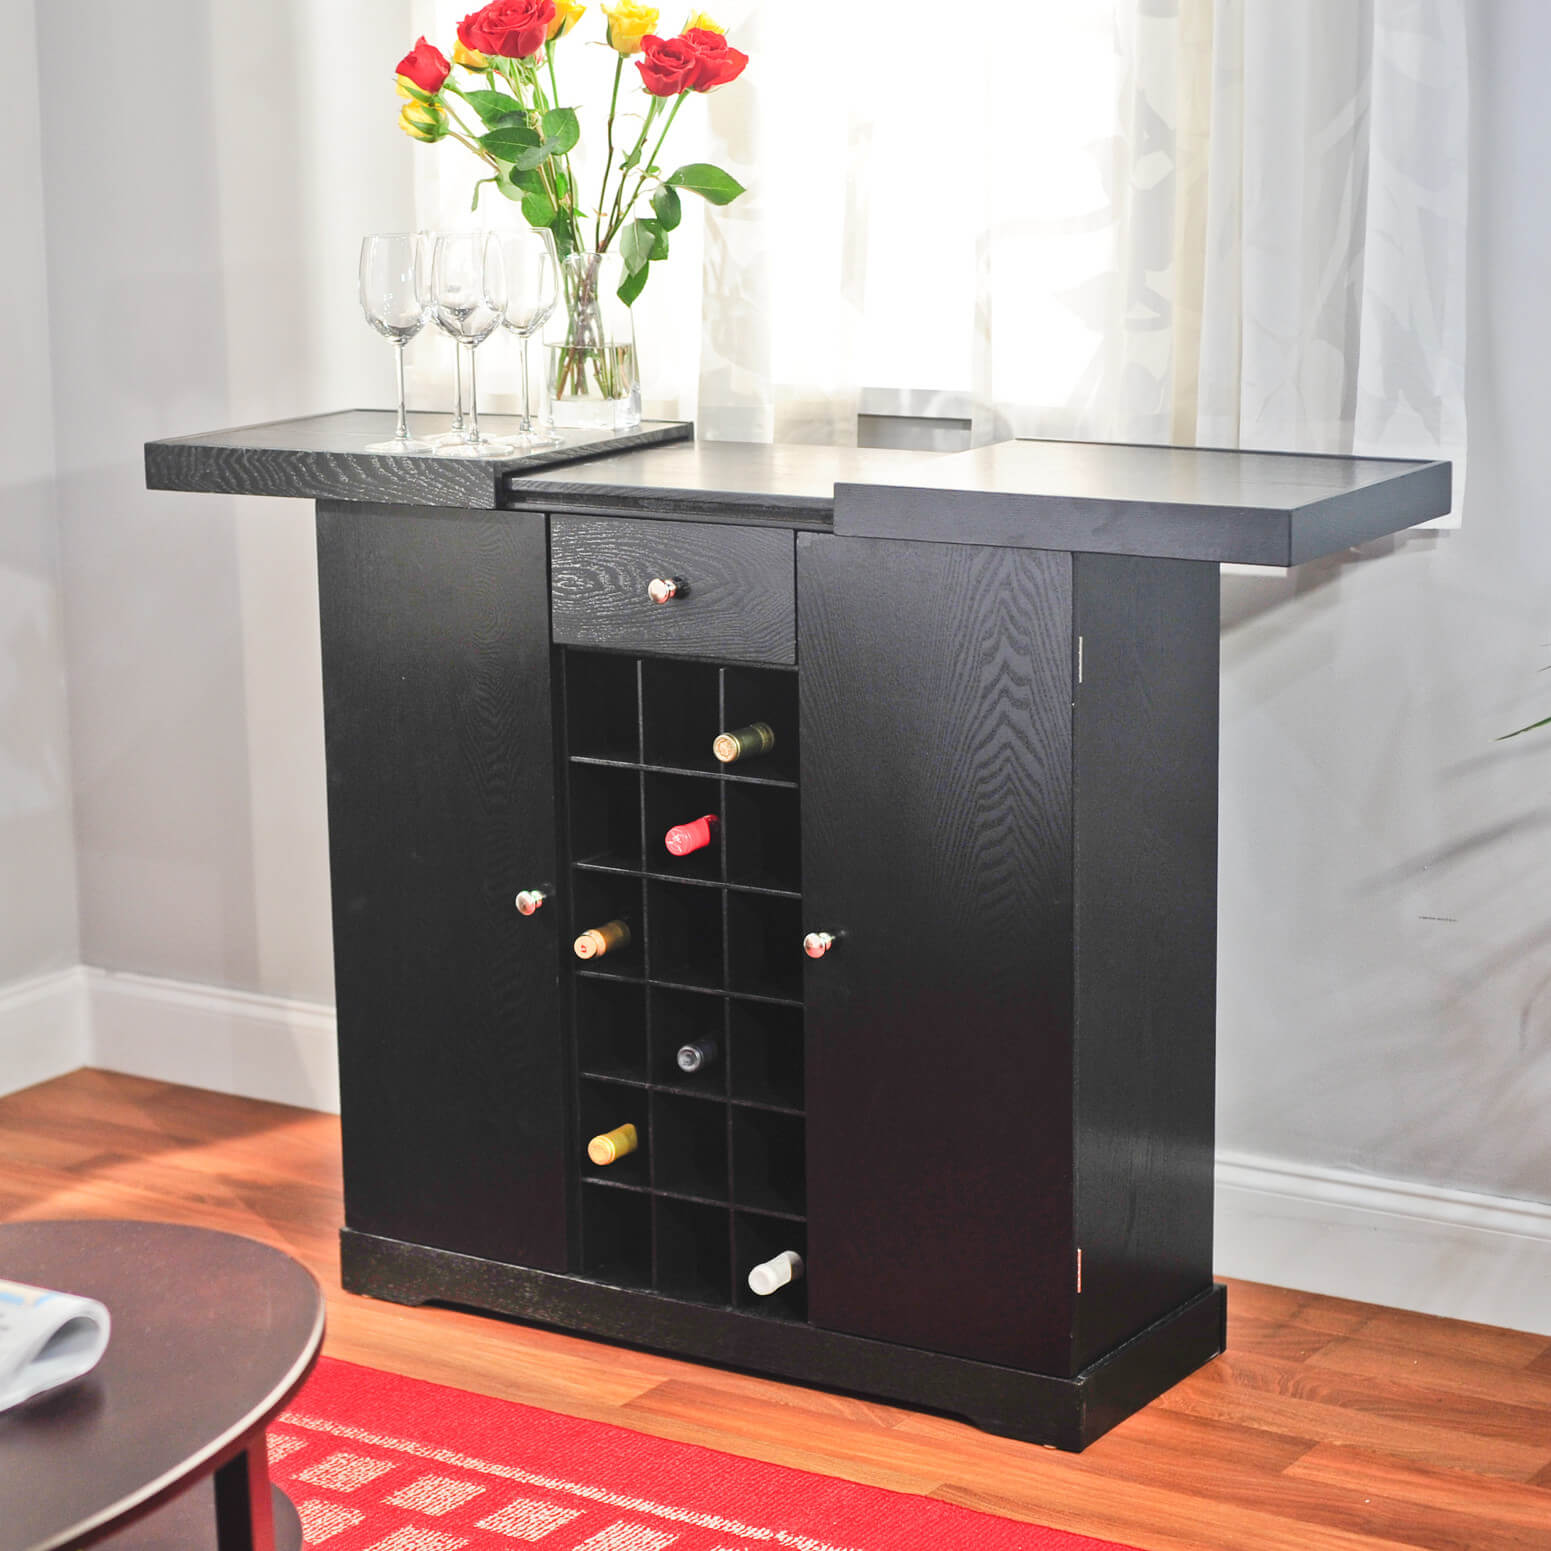 This Is A Classic Cabinet Instead Of A Bar. We Included It In This Gallery